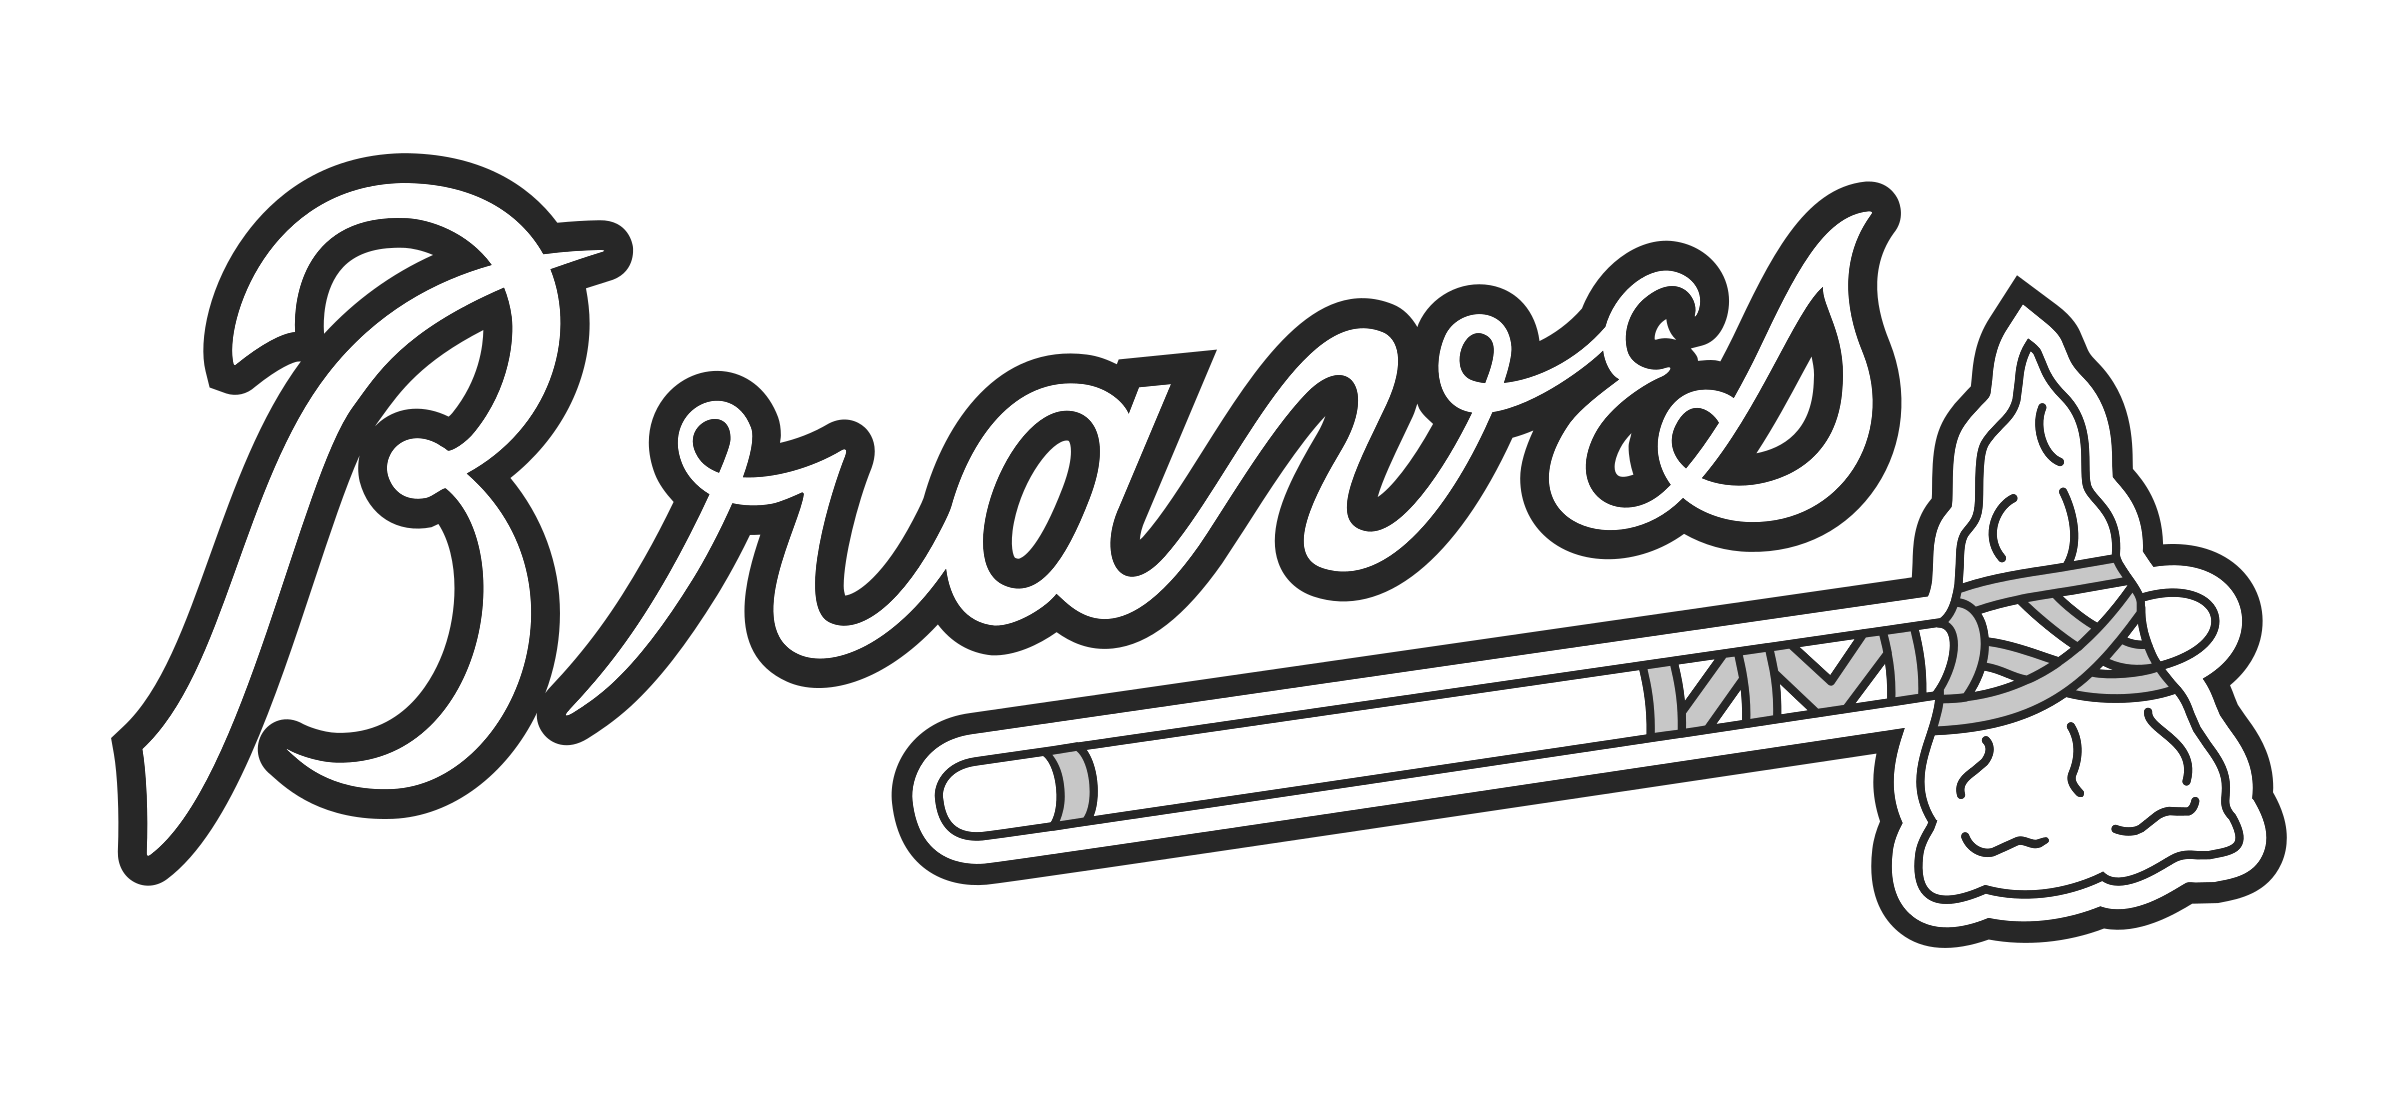 Atlanta drawing black and white. Braves mlb los angeles